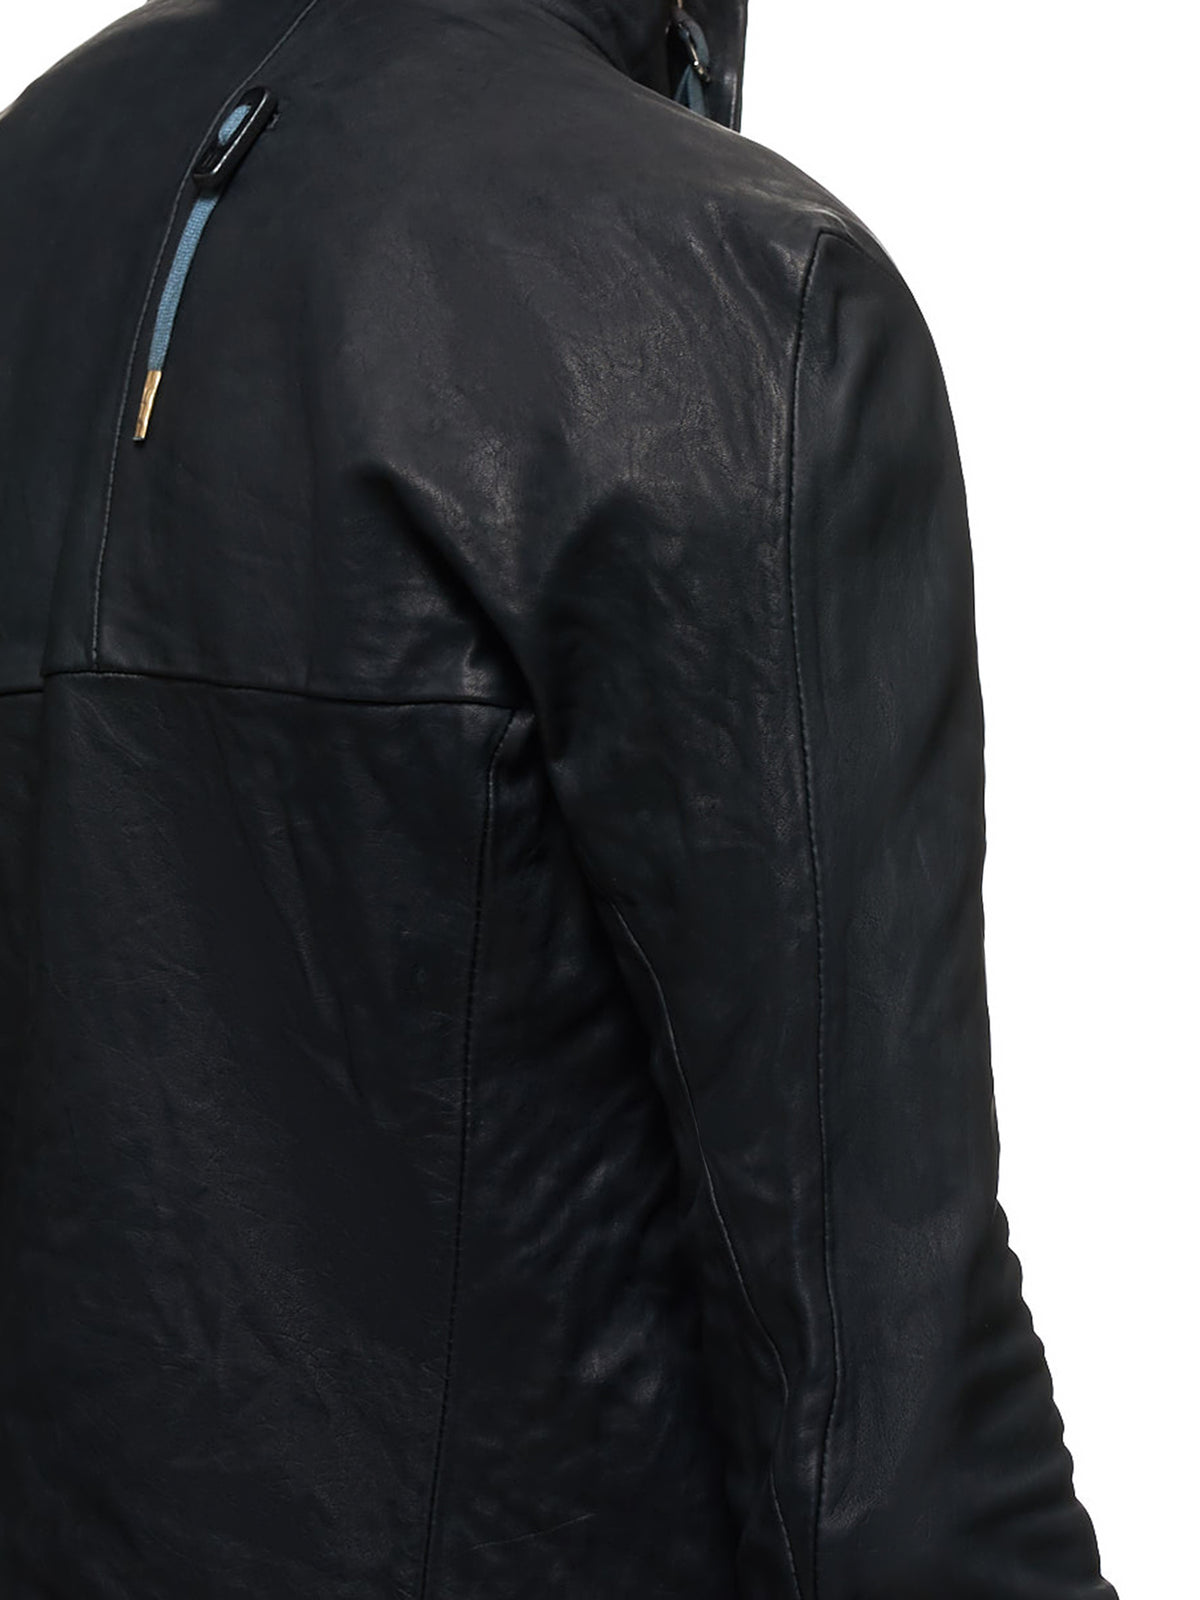 Boris Bidjan Saberi Leather J5 Jacket - Hlorenzo Detail 2